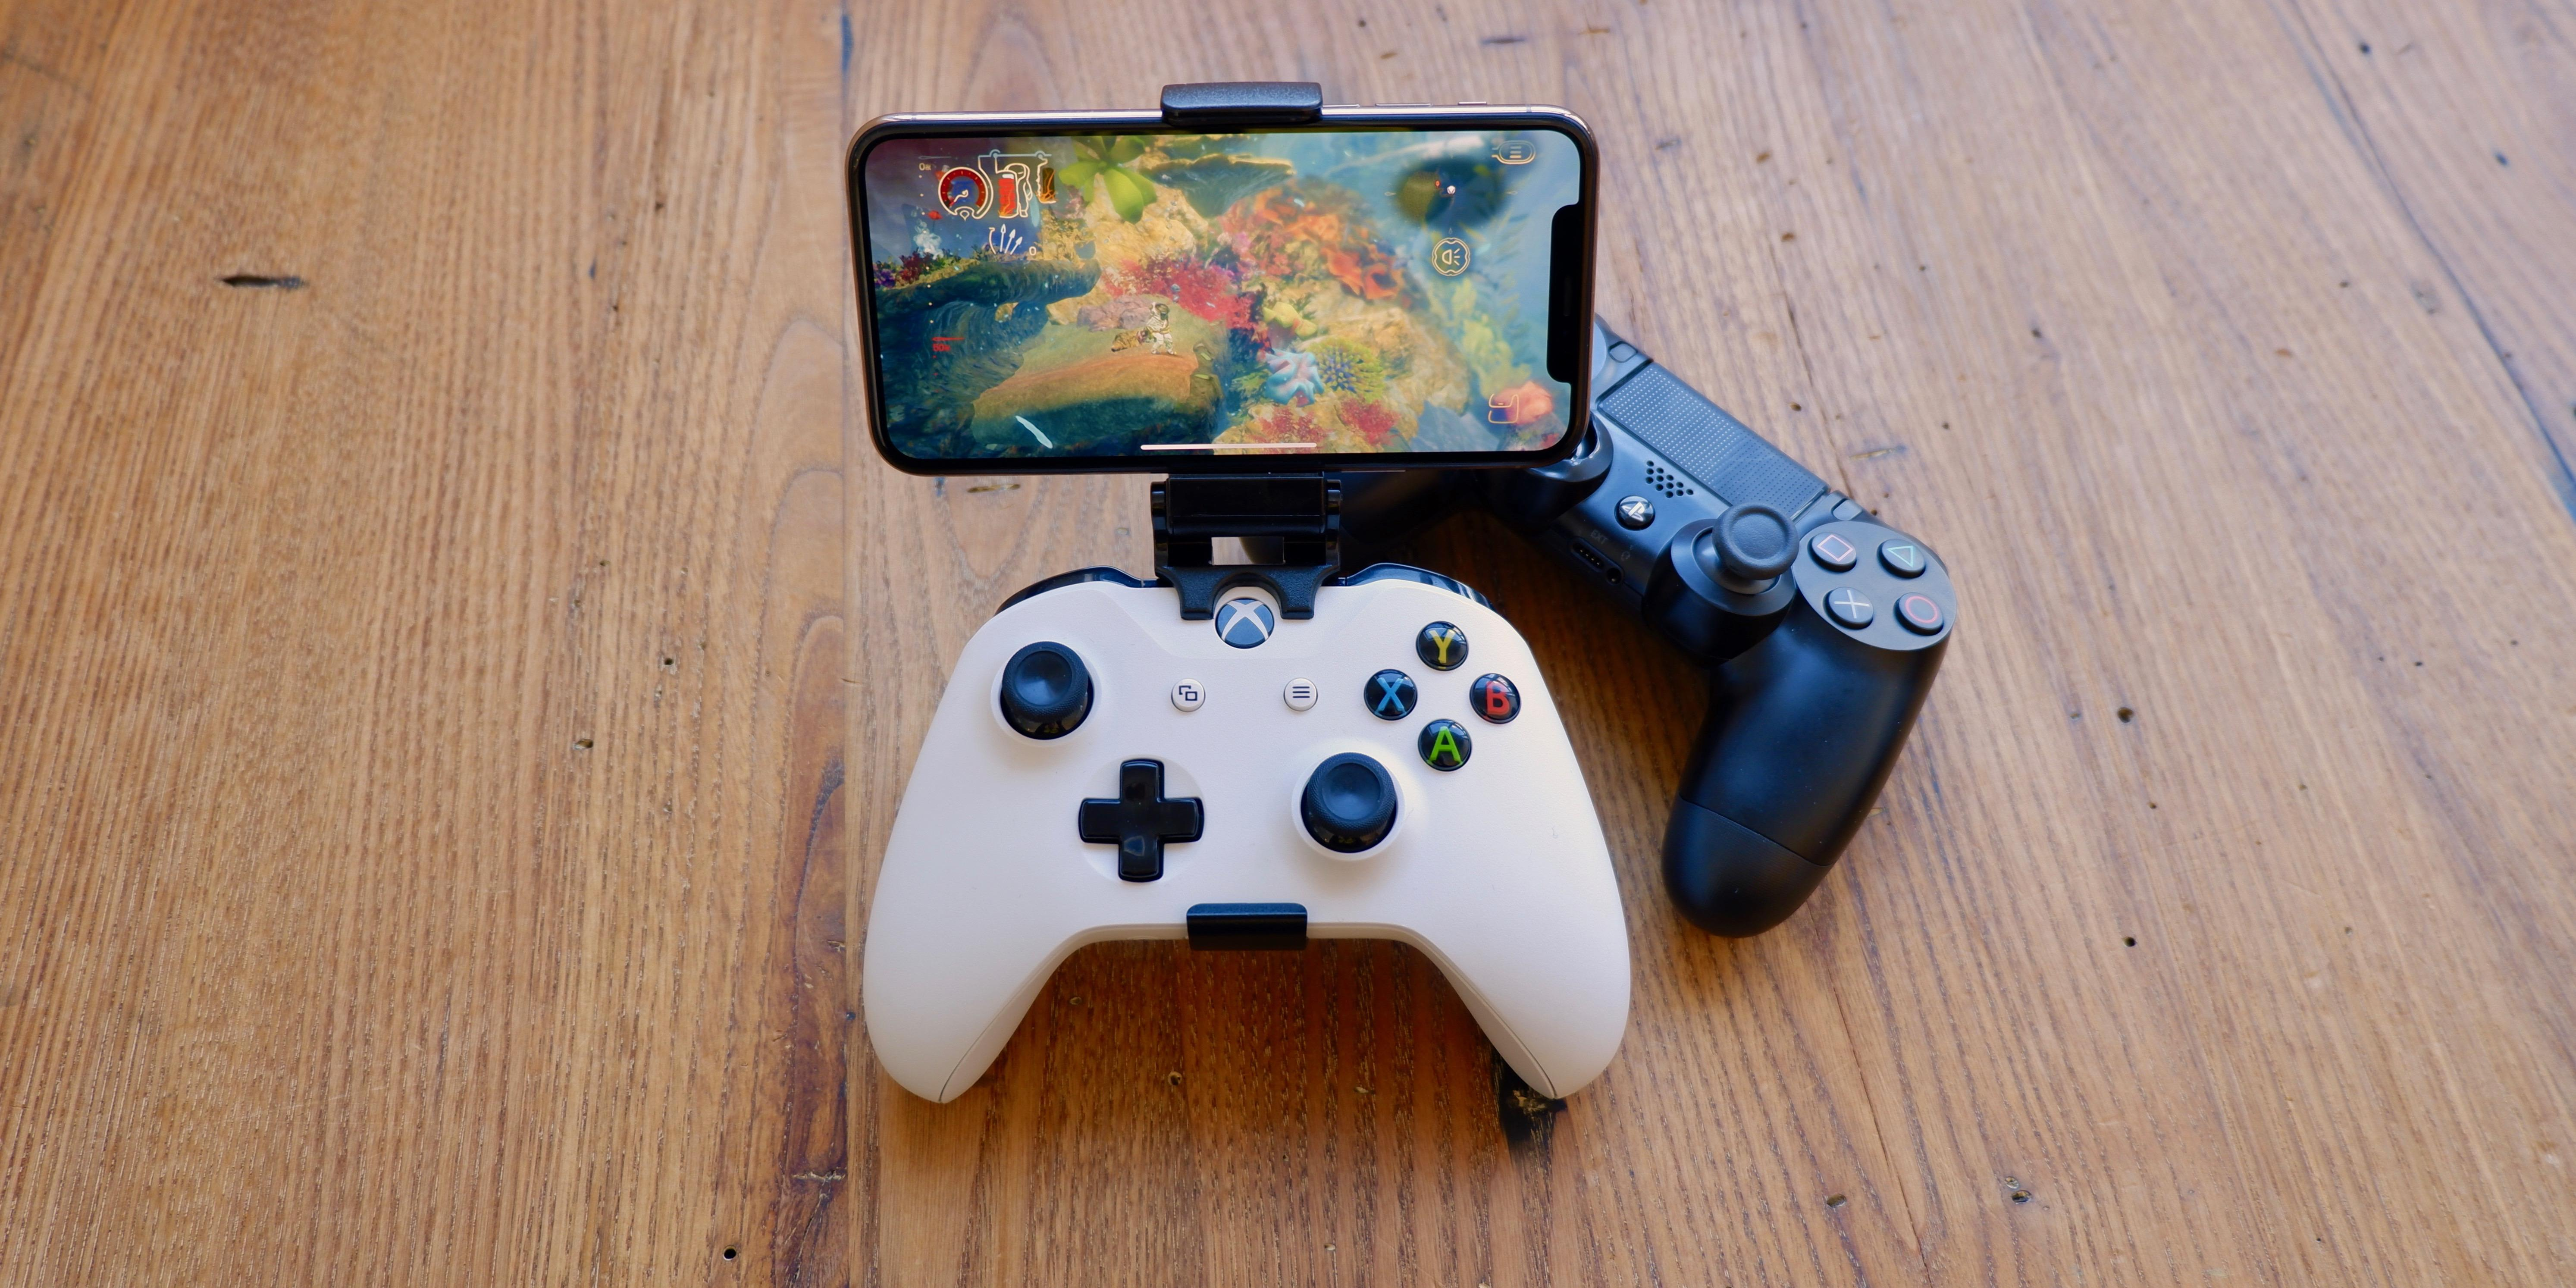 Here S How To Connect Your Ps4 Or Xbox Controller To Your Iphone Cnet